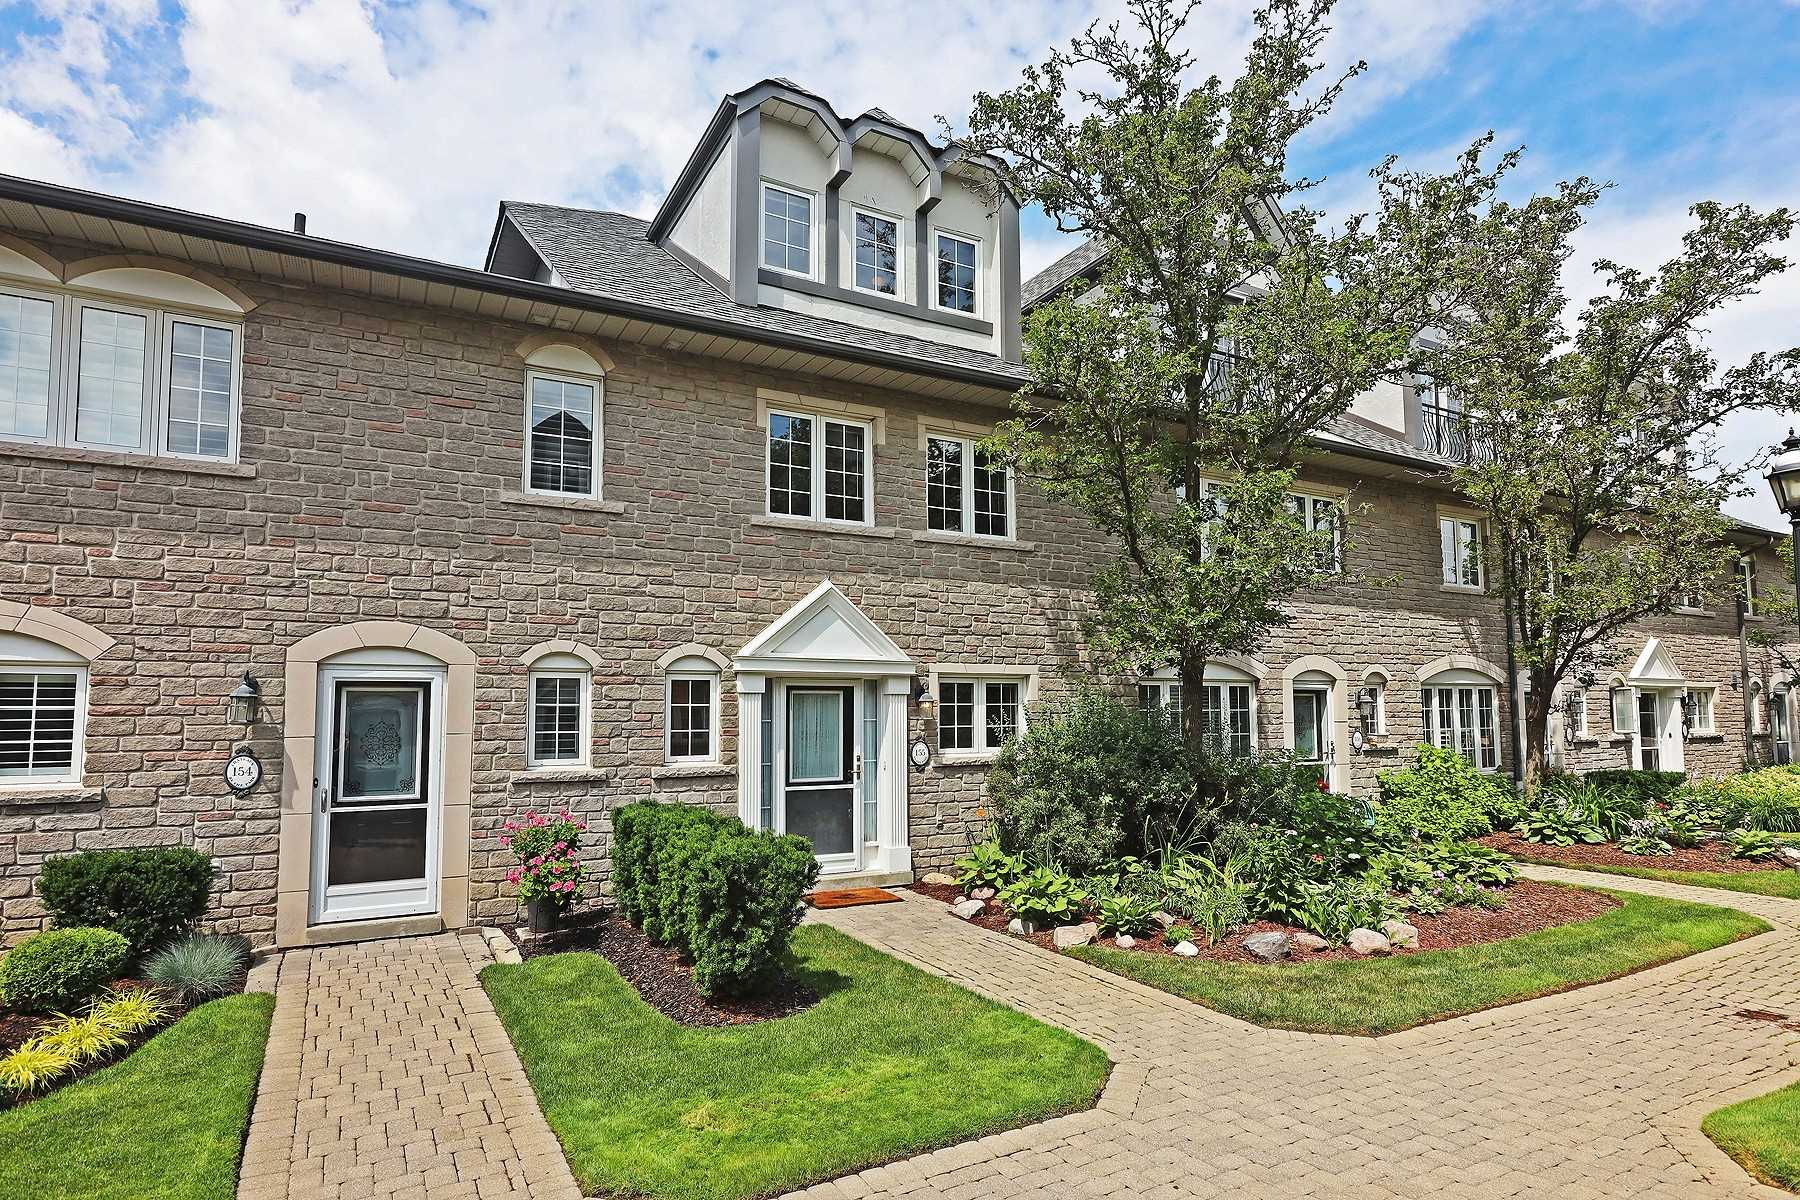 Condo Townhouse For Sale In Pickering , 3 Bedrooms Bedrooms, ,3 BathroomsBathrooms,Condo Townhouse,For Sale,155,Royal